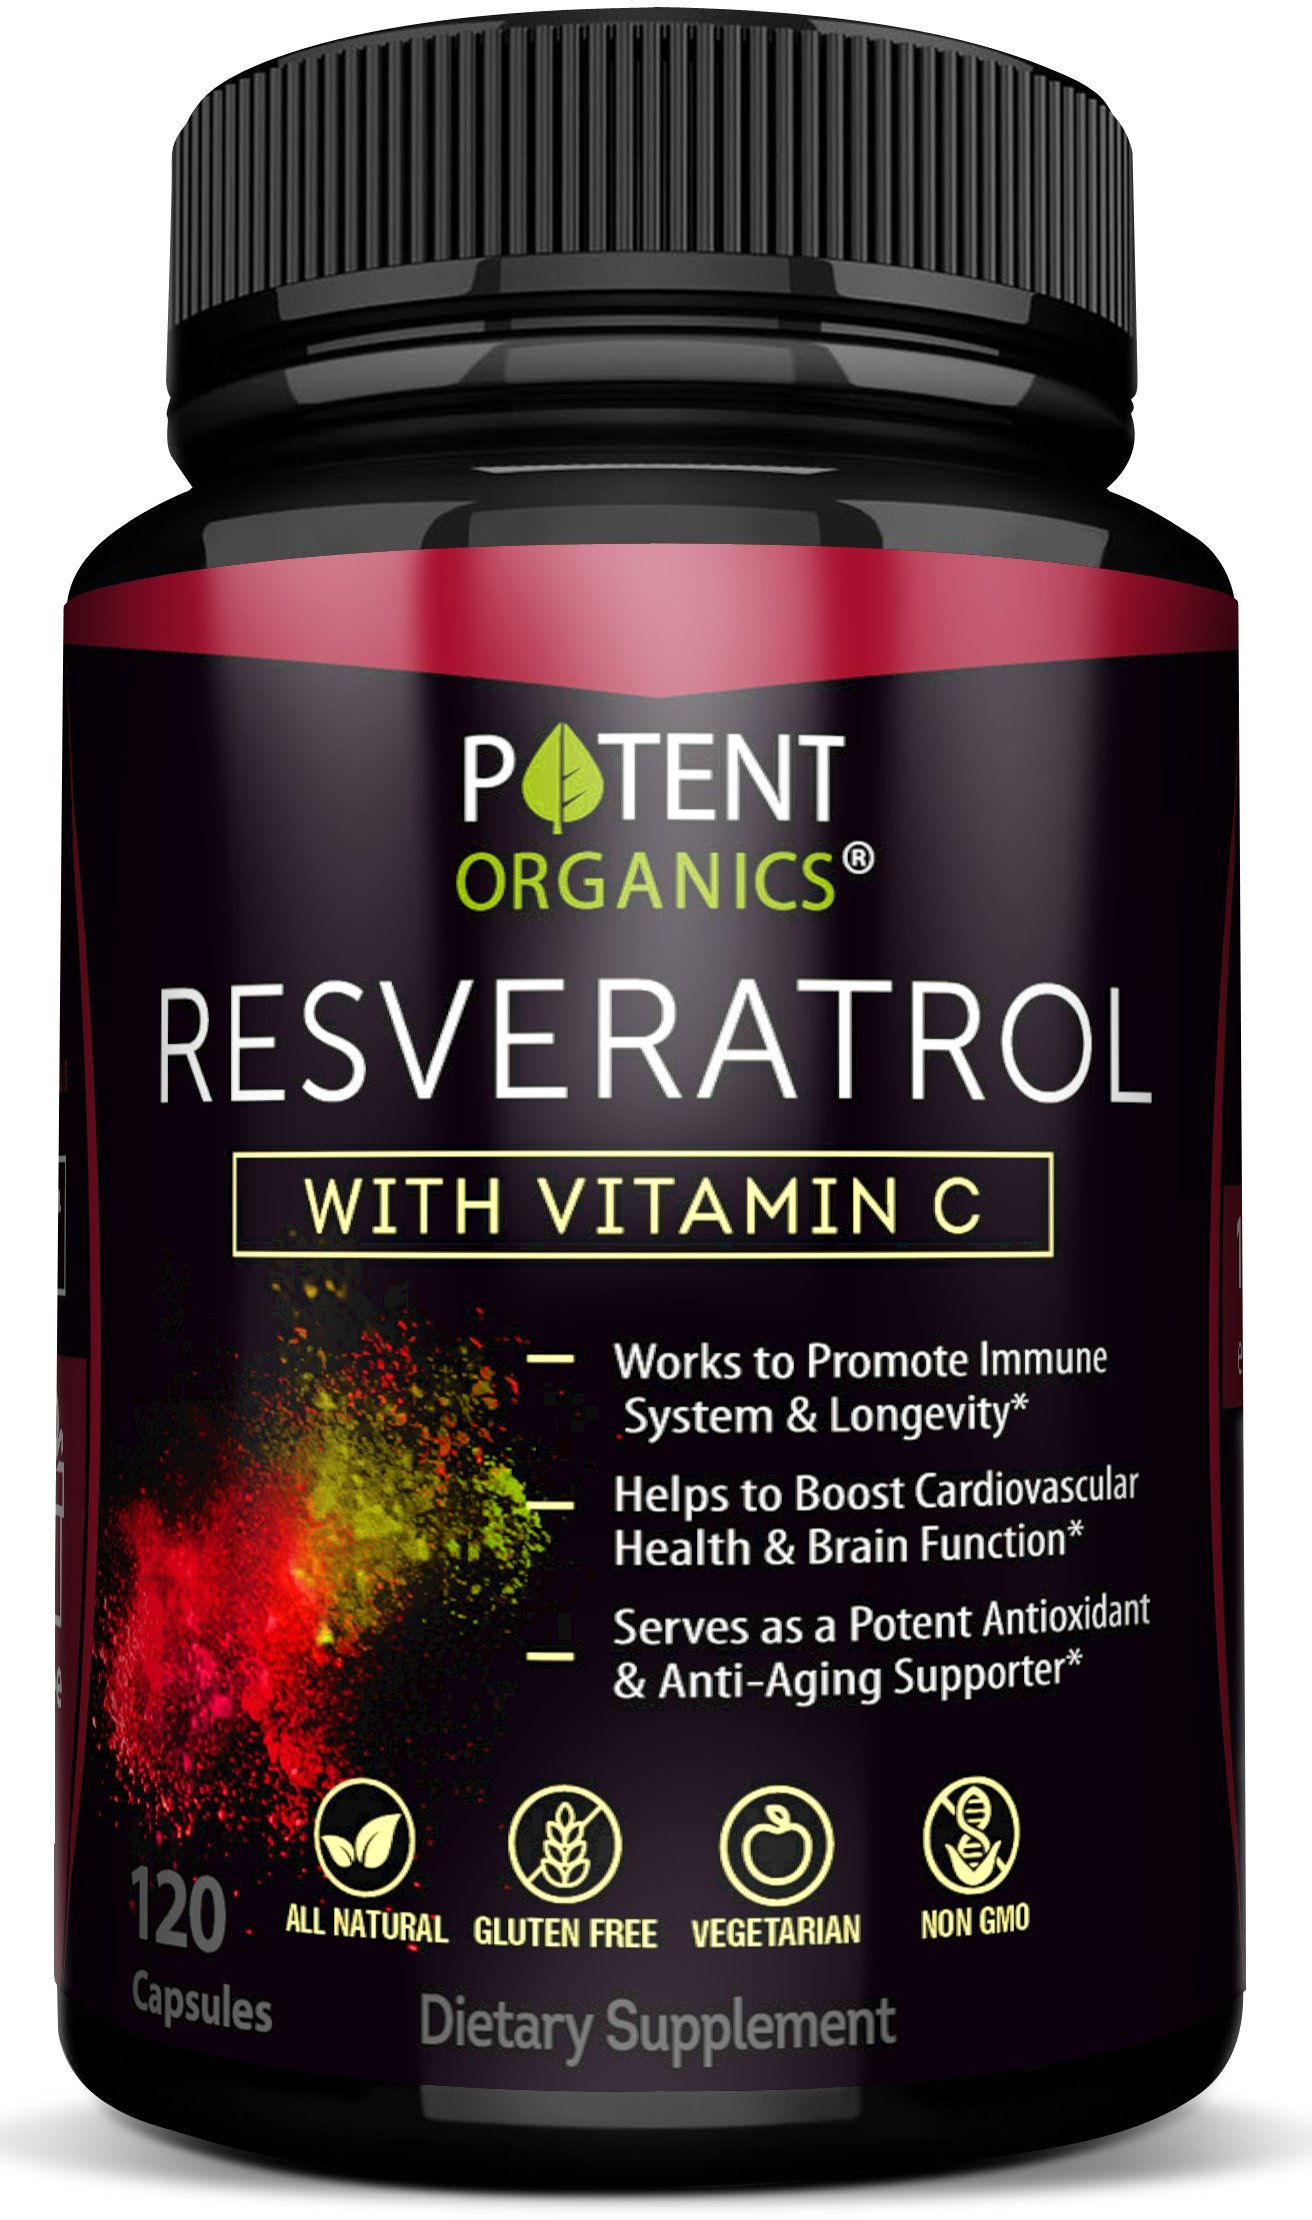 Extra Strong Resveratrol 1150mg - Anti-Aging Antioxidant Supplement - Promotes Immune & Cardiovascular Health - 120 Veggie Capsules with Trans Resveratrol, Vitamin C & Moringa - 100% Money Back by Potent Organics